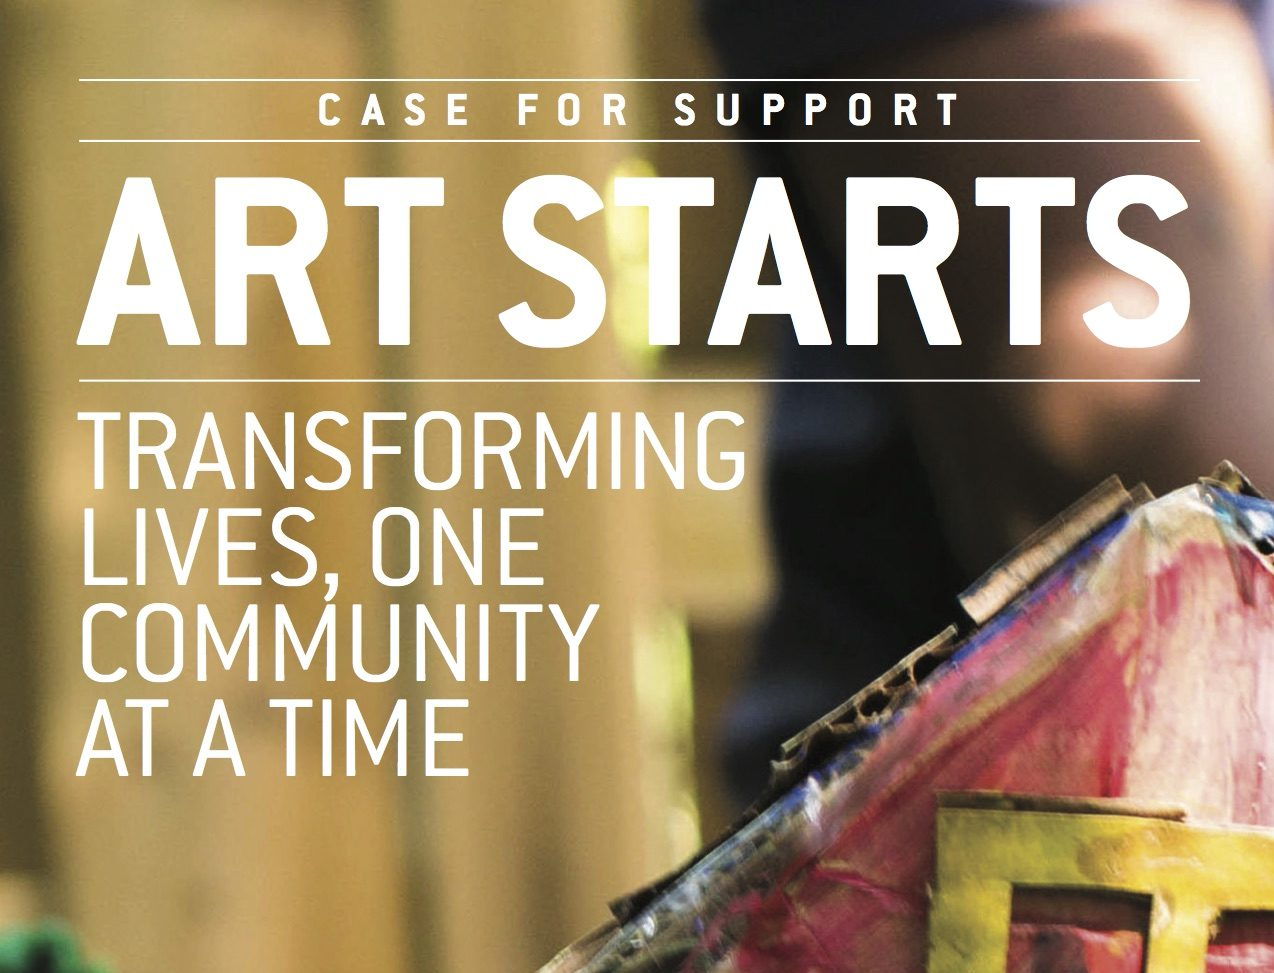 Art Starts: Transforming Lives, One Community at a Time